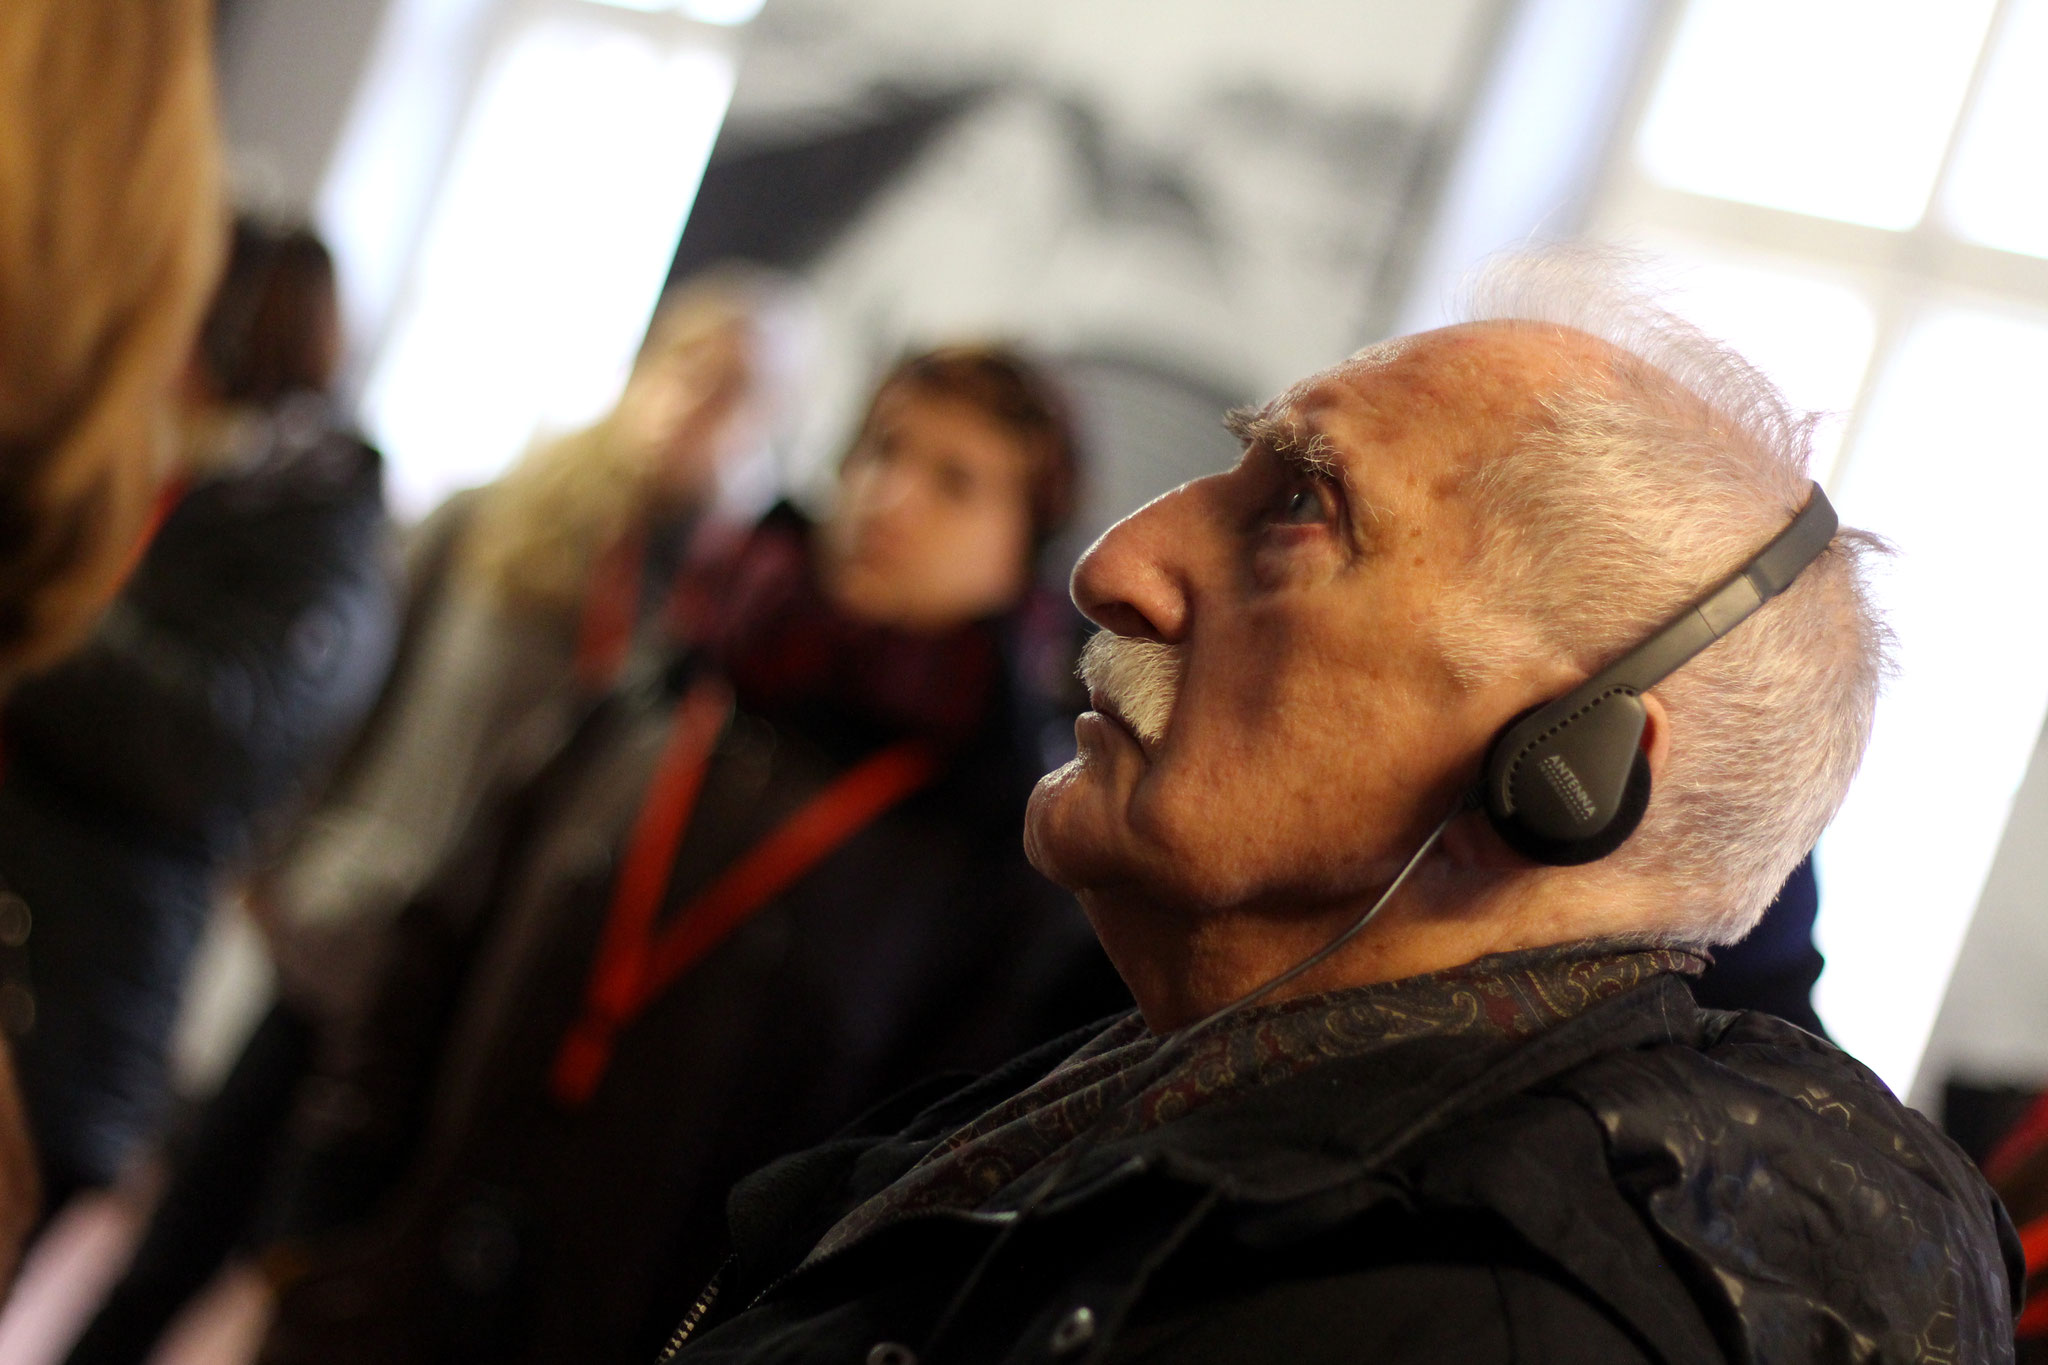 Leon Weintraub, Auschwitz survivor and Polish doctor. January 2015.